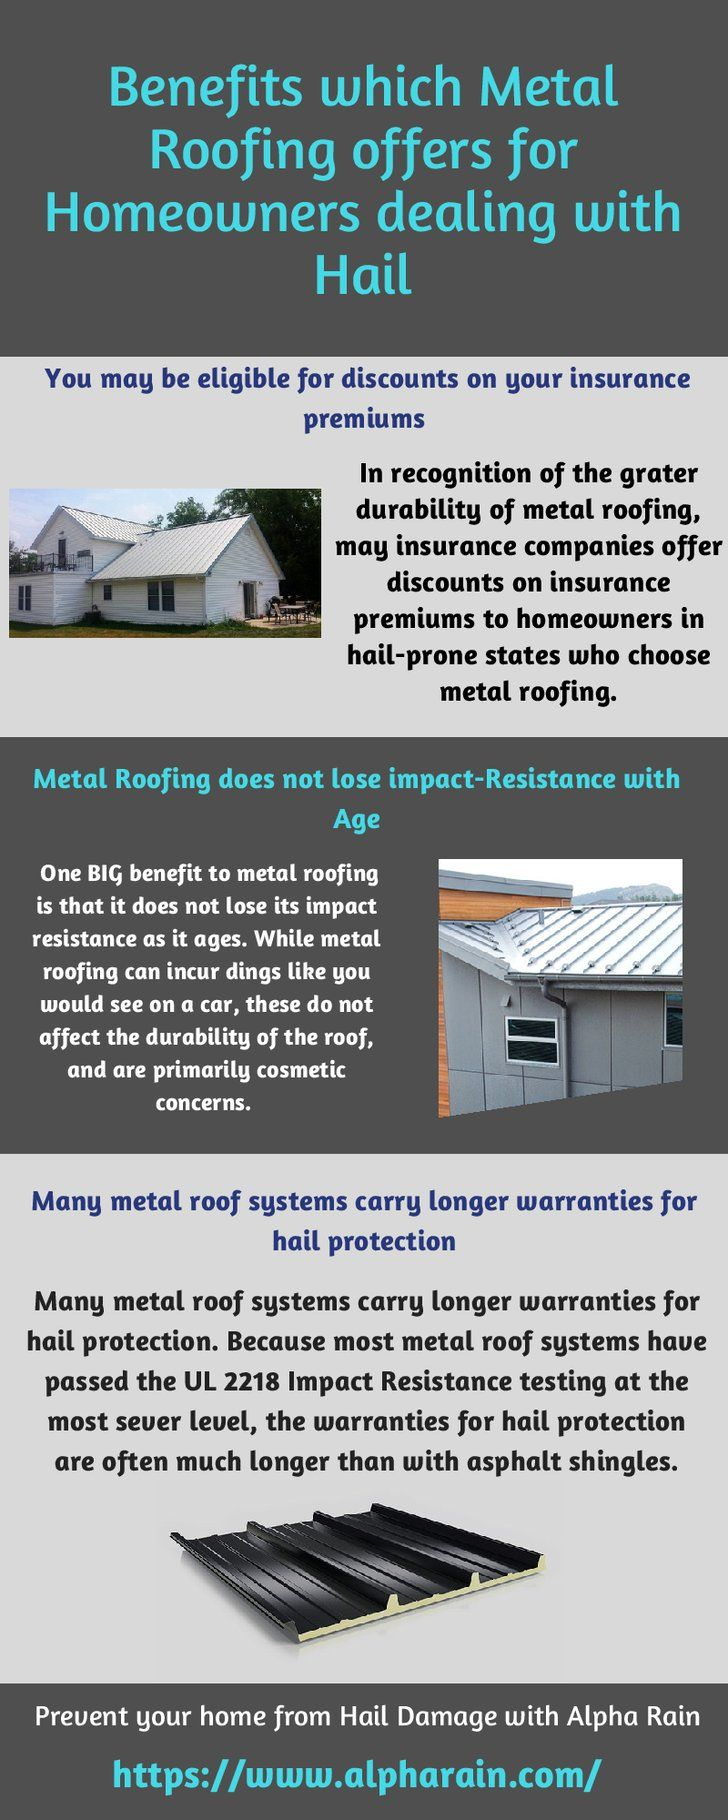 Metal Roofing To Prevent Hail Damage Alpha Rain Install Metal Roof To Prevent Your Roof From Hail Damage Alpha Rai Metal Roof Roofing Services Installation